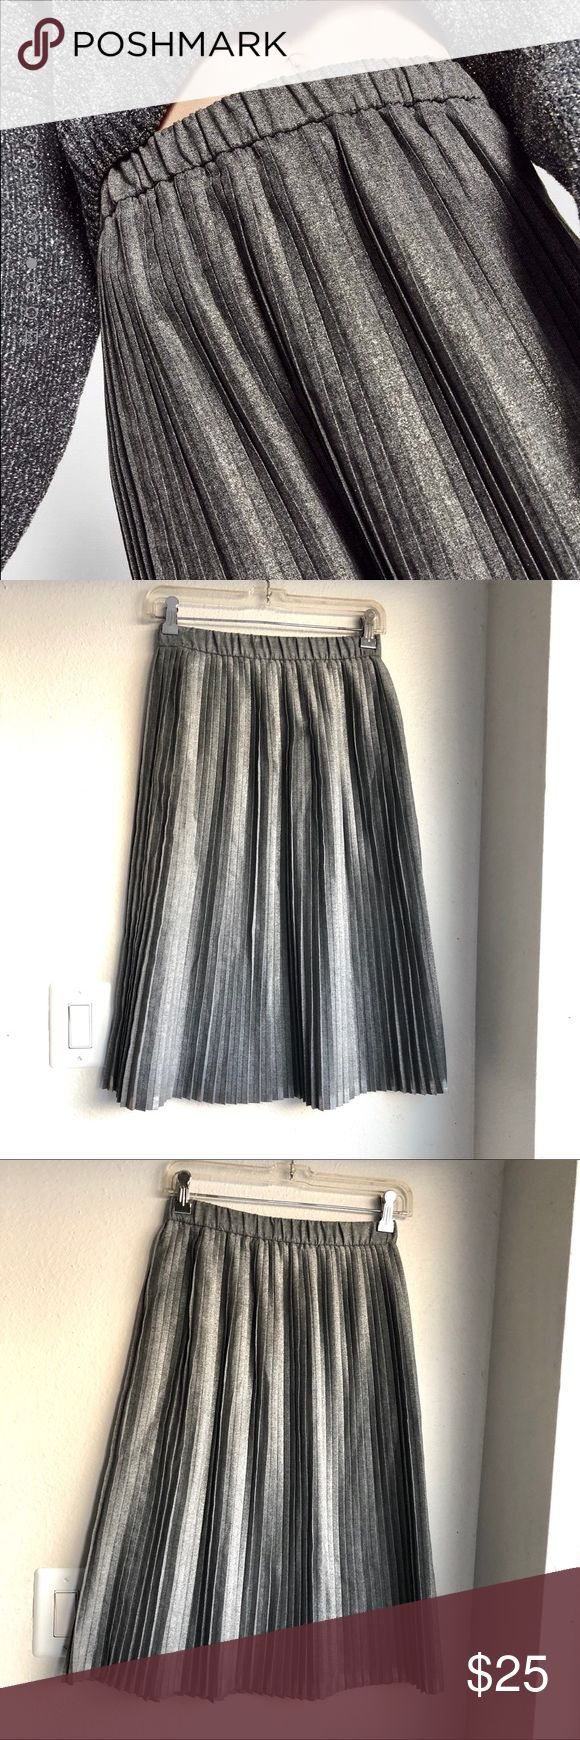 """🆕Zara Pleated Accordion Midi Skirt Gray Metallic Authentic Zara Trafaluc collection pleated midi skirt. Color is a gorgeous textured gray with metallic accents. Elasticized covered waistband. Size XS. Approx 26.5"""" long, 12.5"""" across waistband lying flat. Excellent condition, no stains/holes or signs of wear. Cover photo credit Zara. ❌No trades❌Price firm unless bundled. Zara Skirts Midi"""